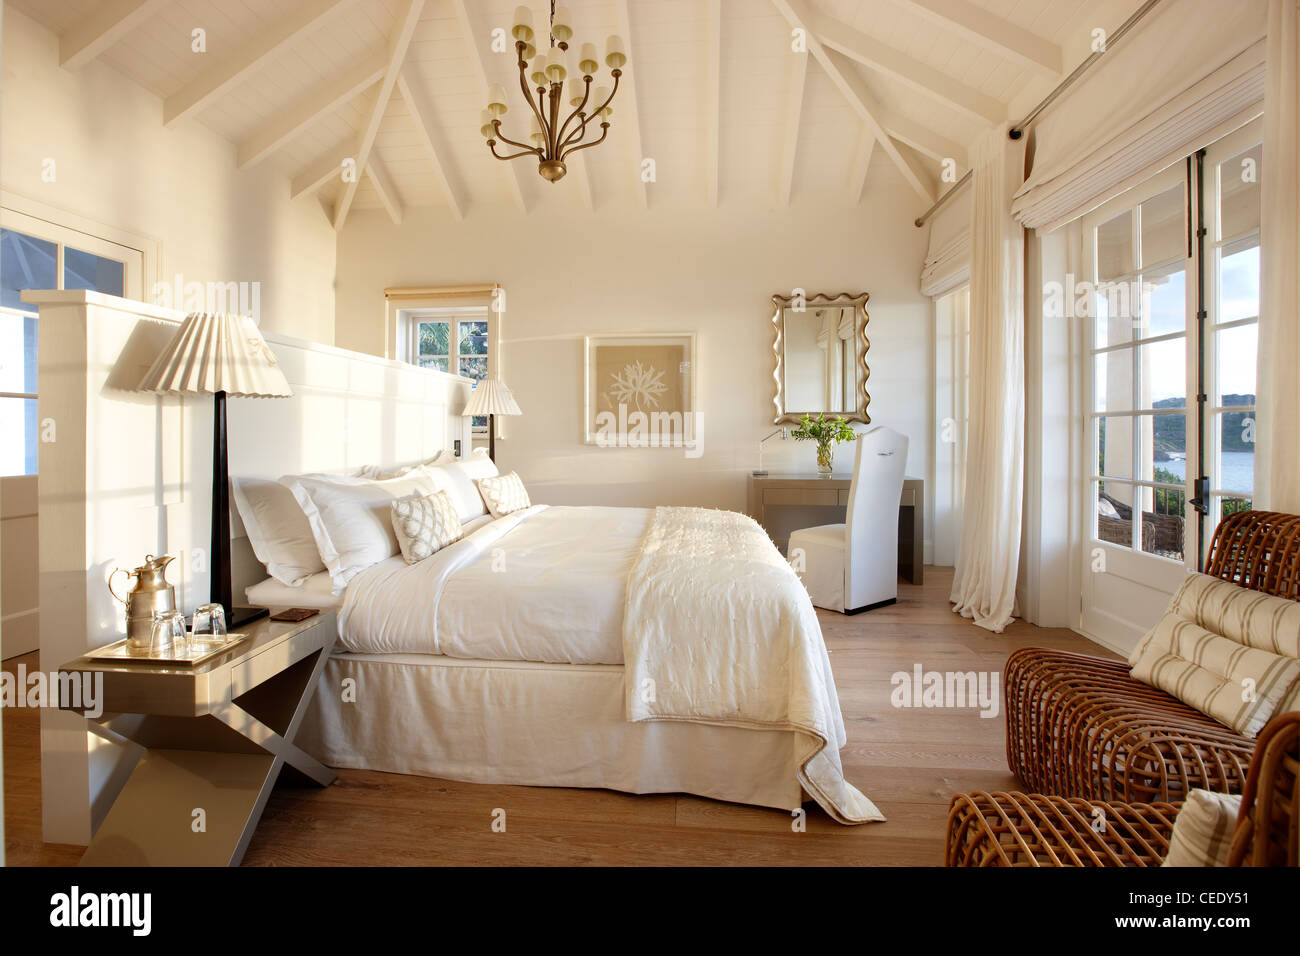 sunrise bedroom master suite - Stock Image